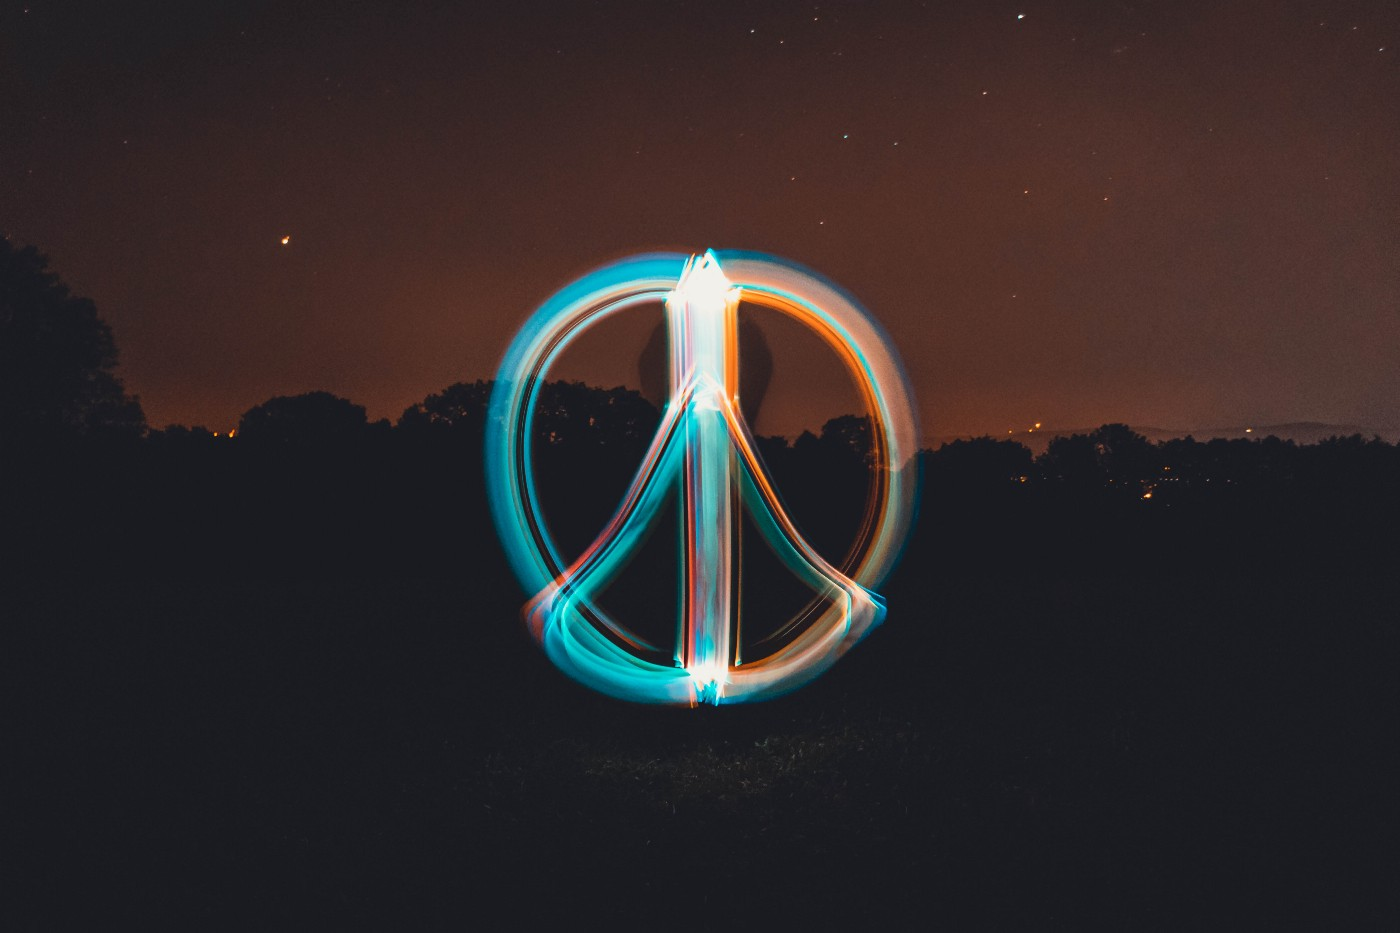 A peace sign glowing in the dark.